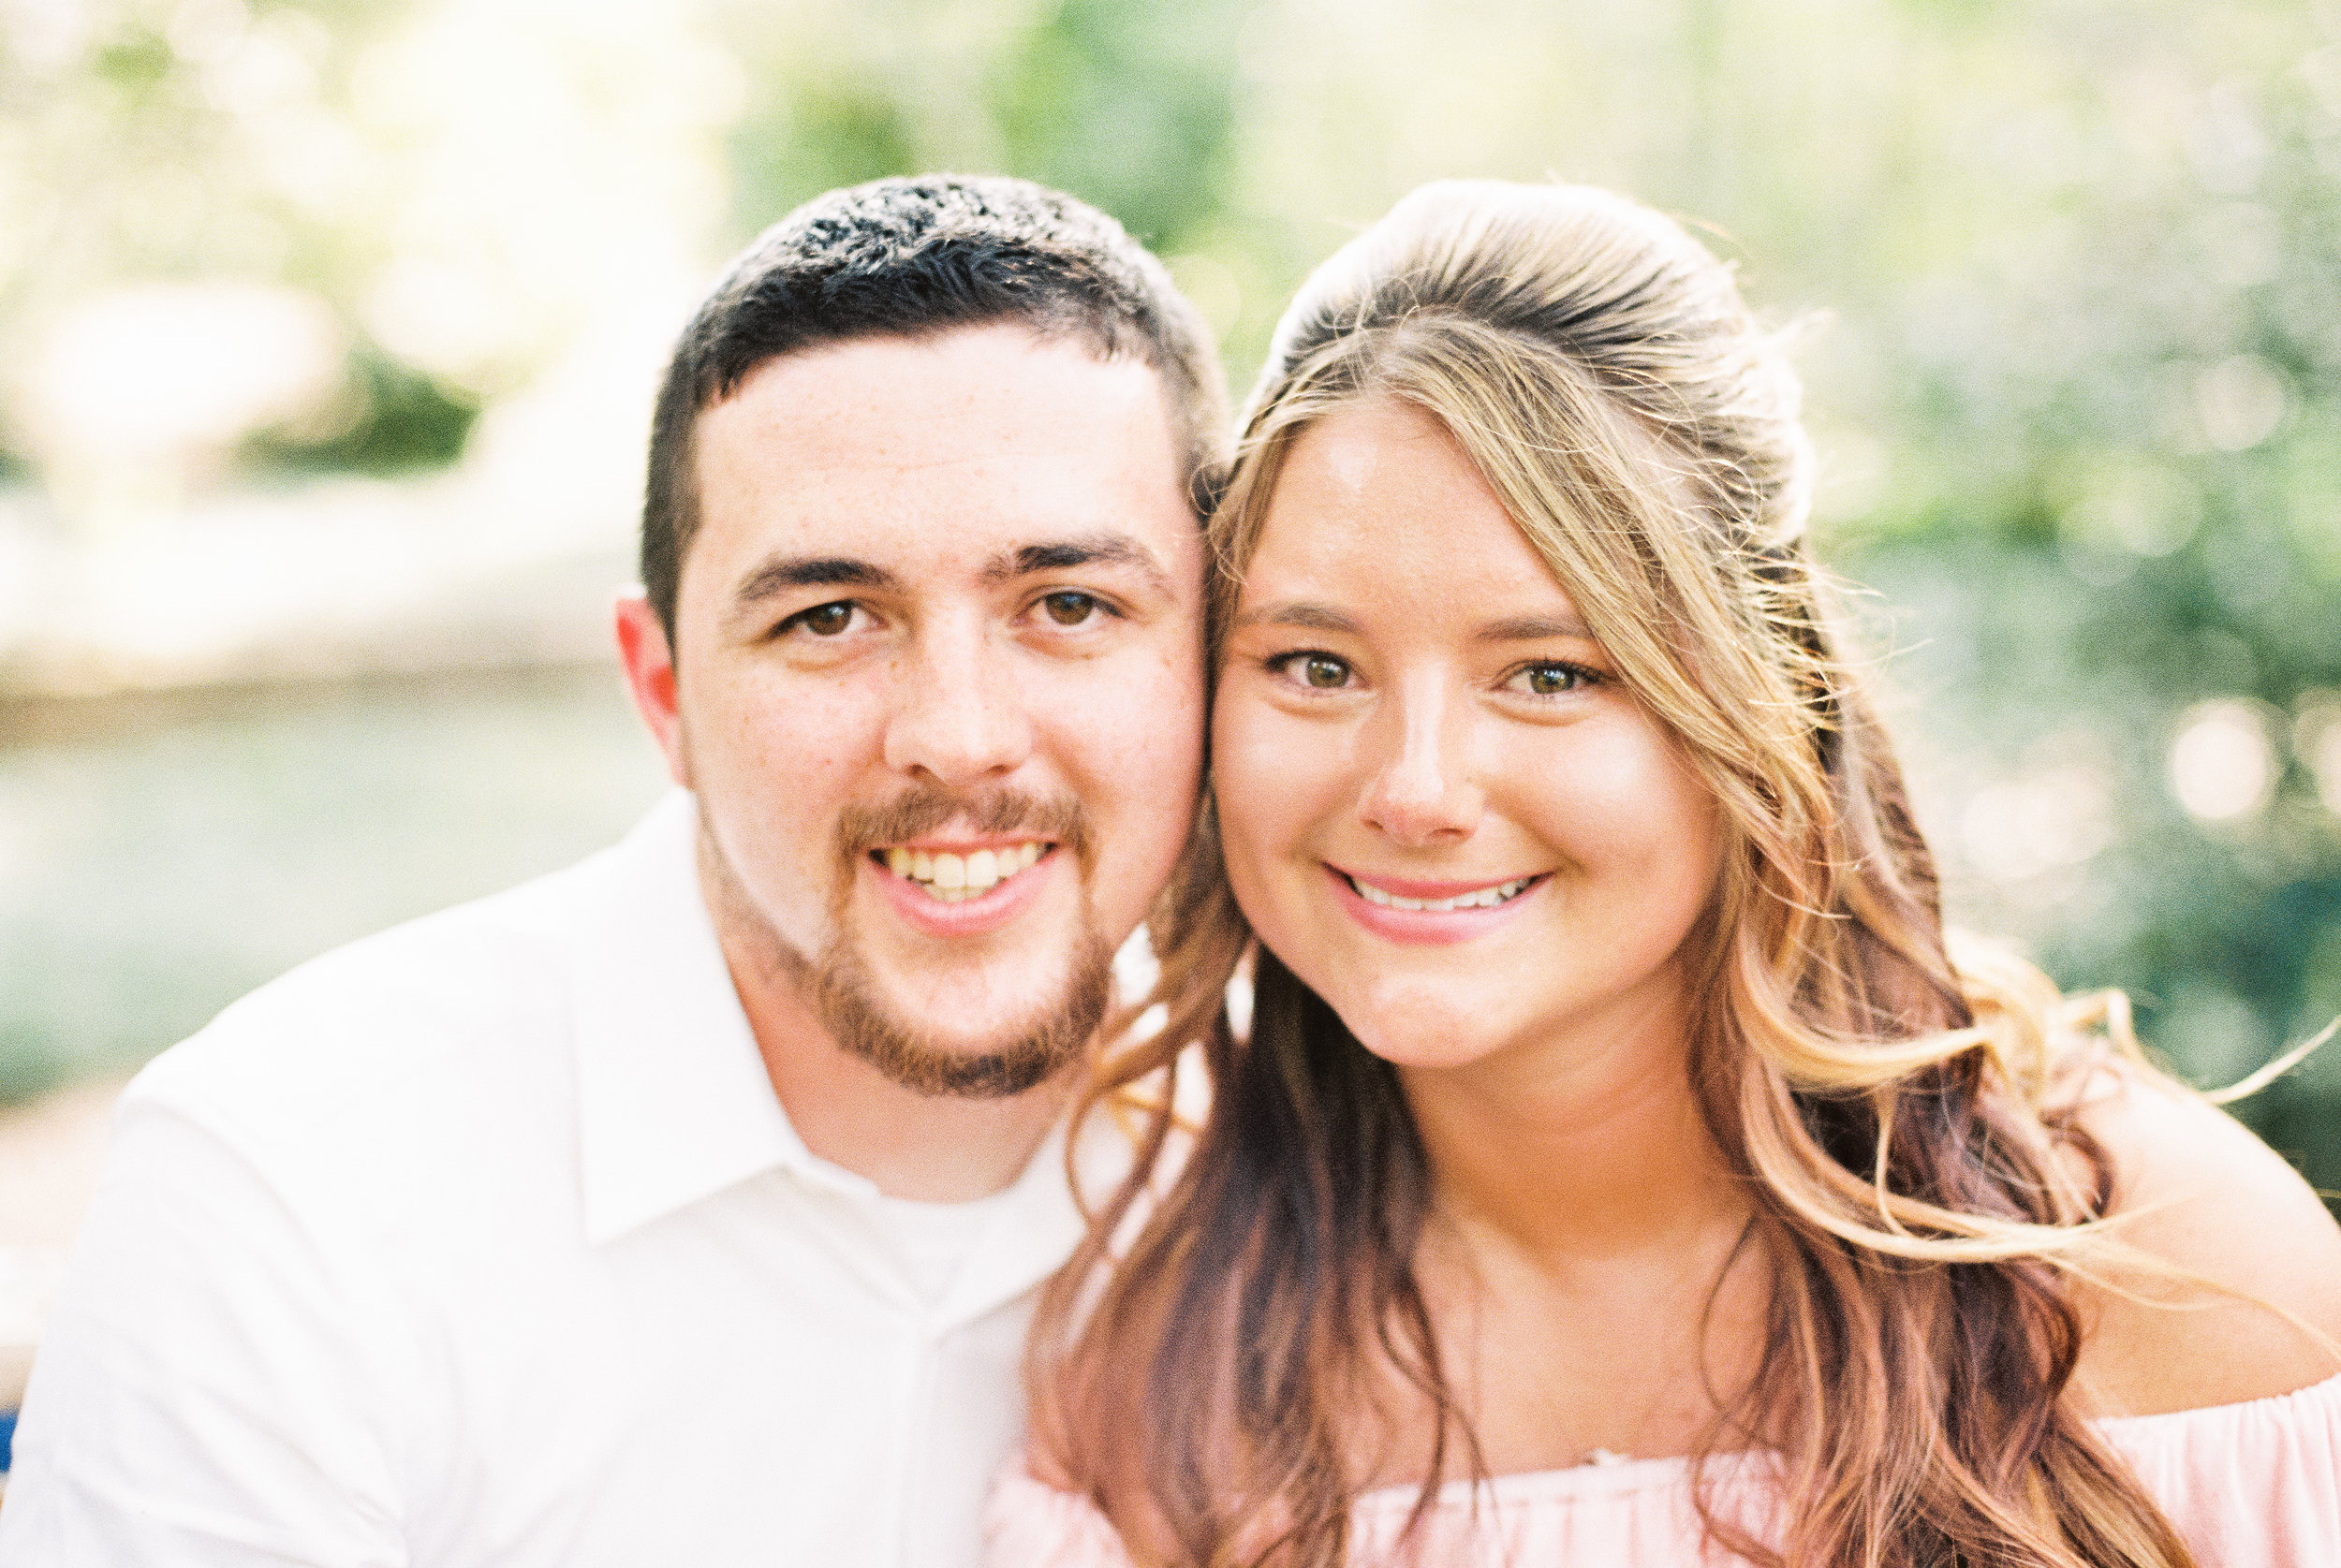 missy_stephen_film_bok_tower_engagement_2019_blog-2.jpg